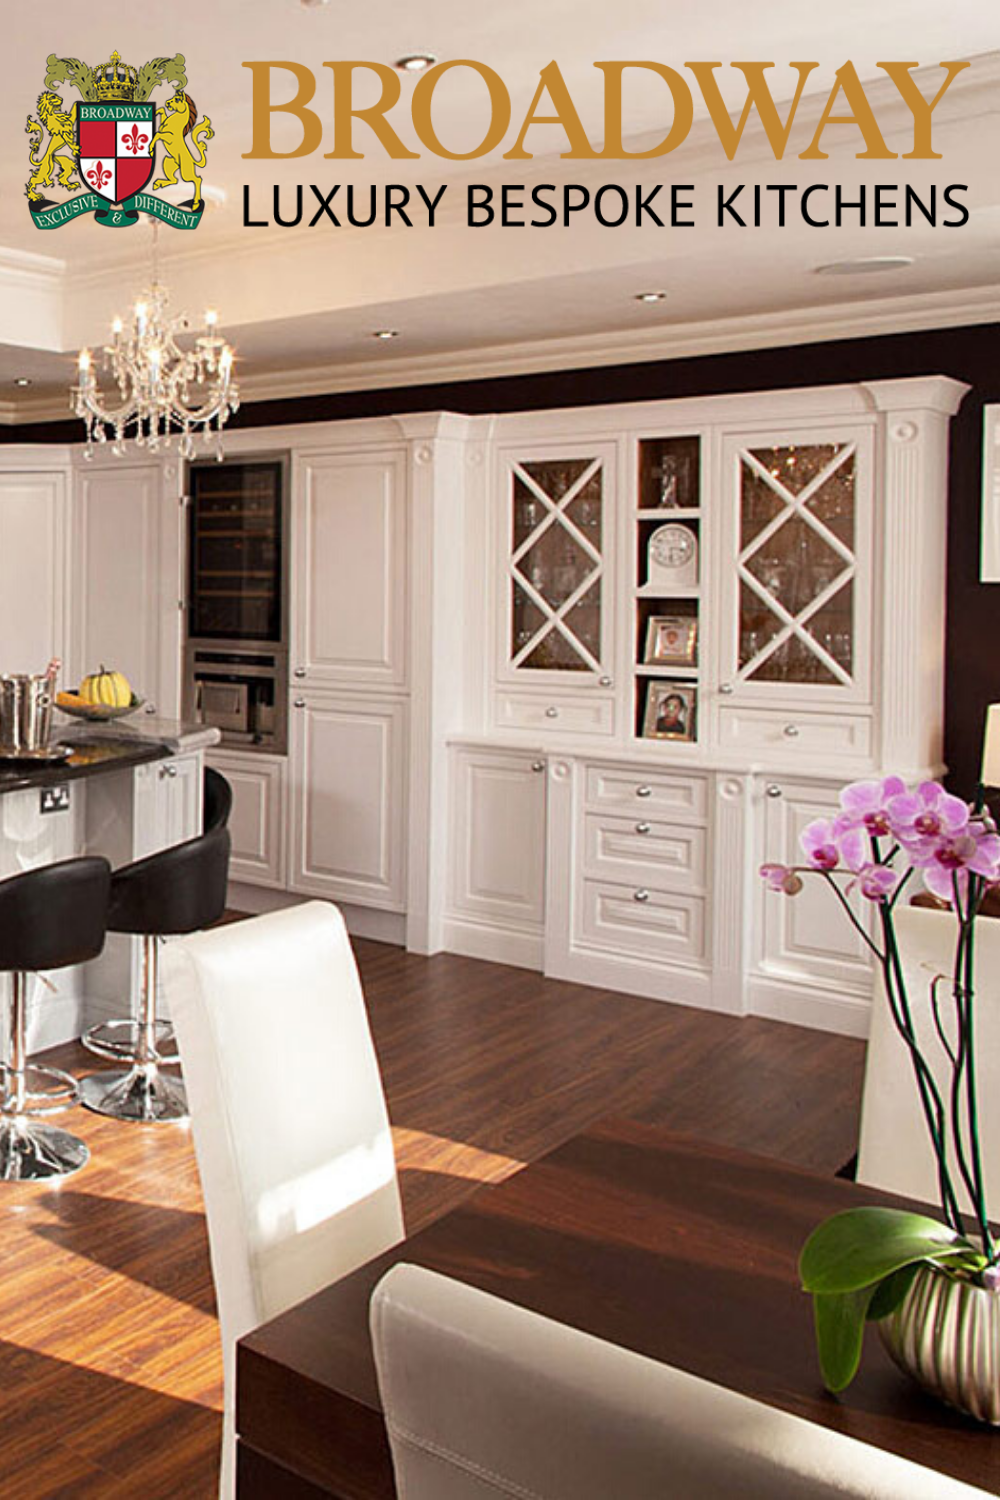 Broadway Hand Painted Edwardian Kitchen | Traditional kitchen designers